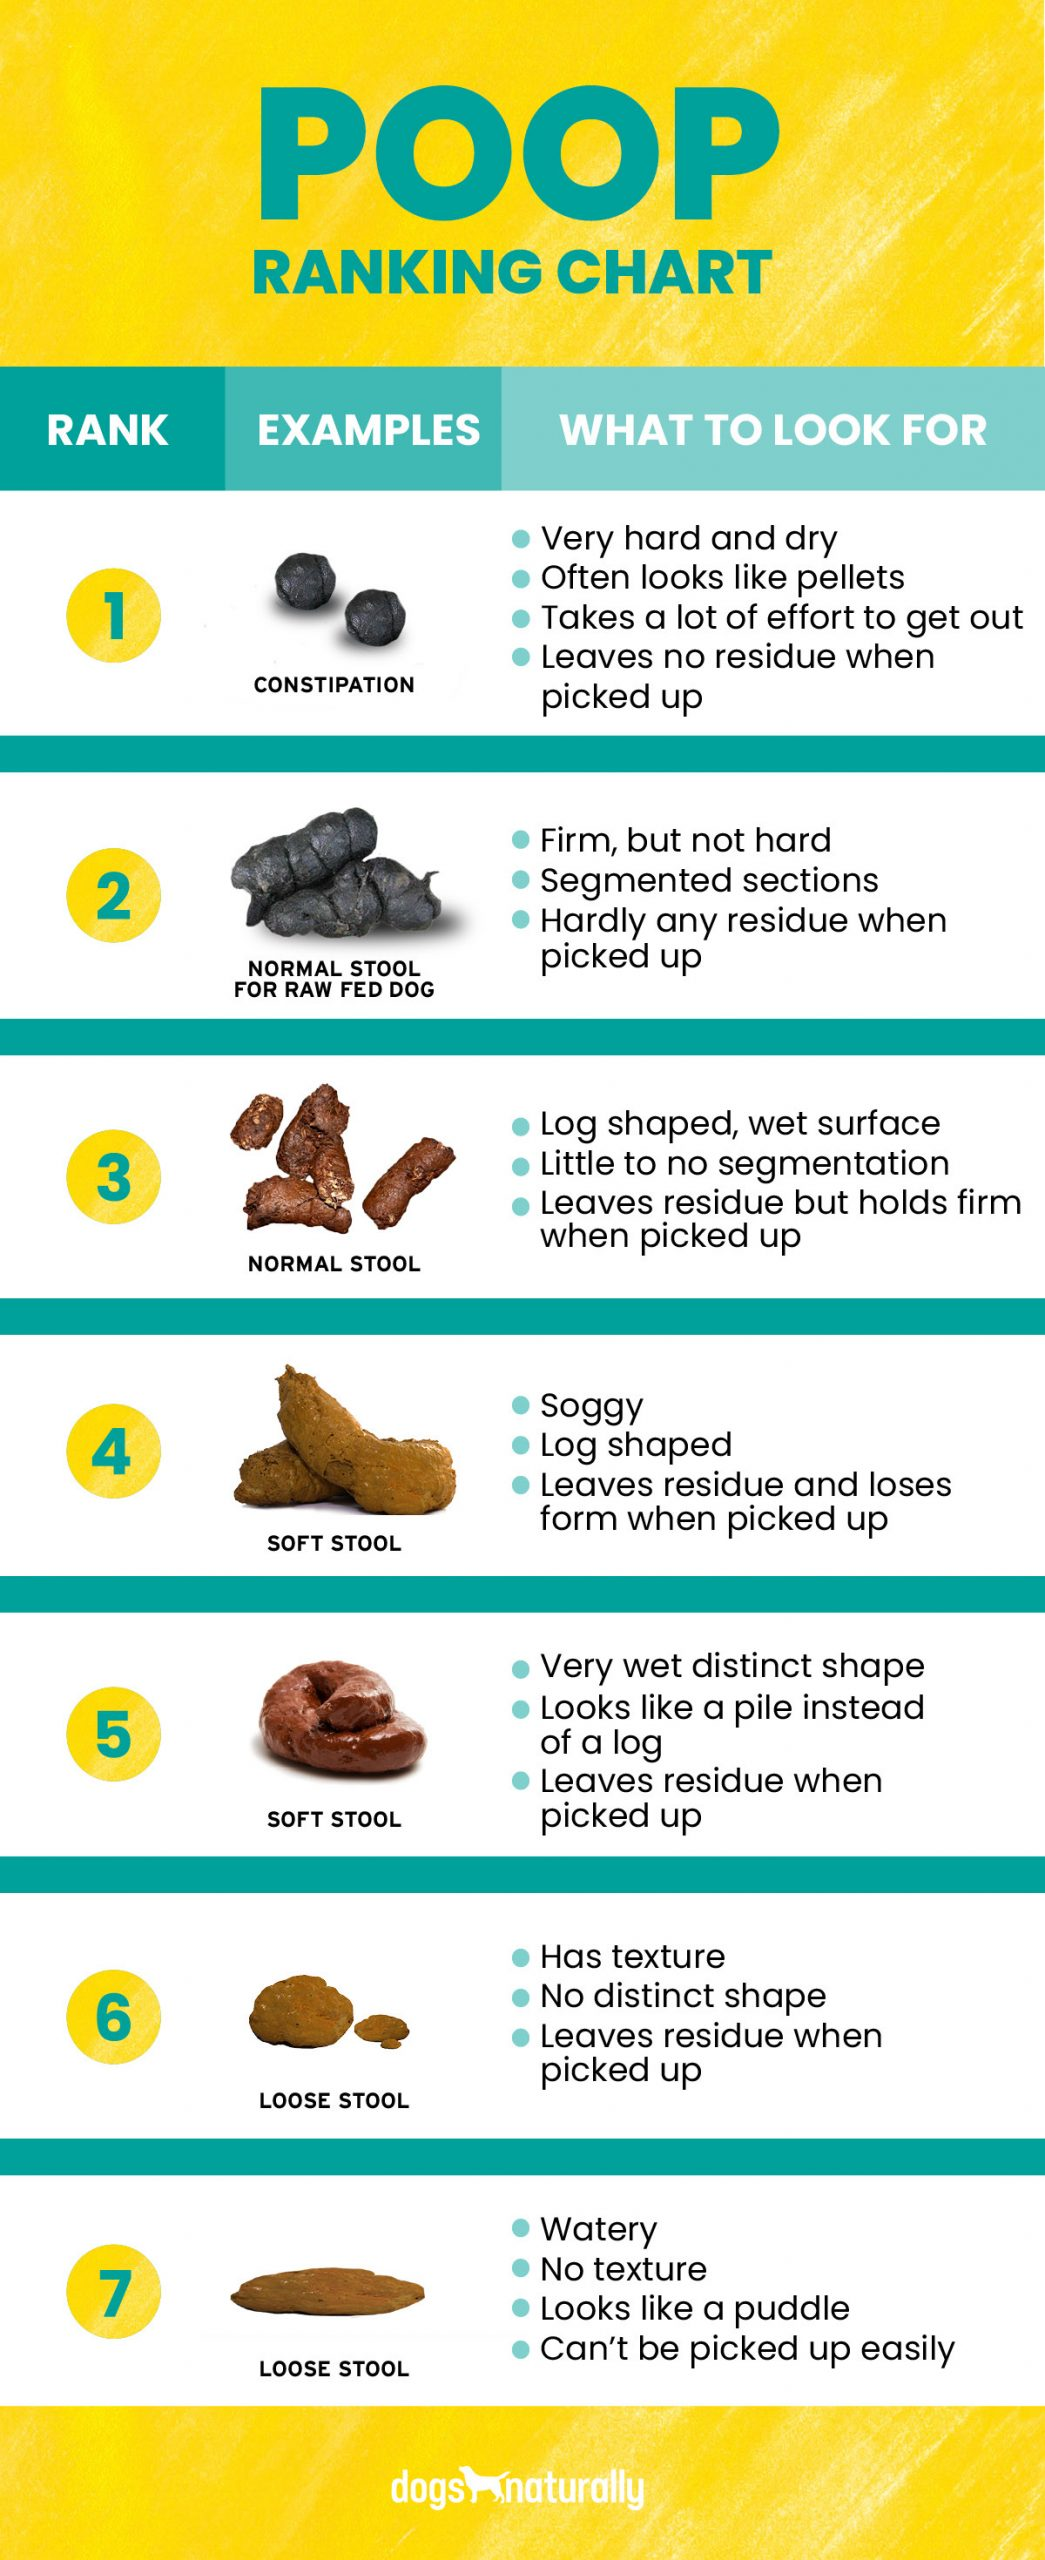 How to stop dog diarrhea poop ranking chart:1. Constipation Often looks like pellets Takes a lot of effort to get out Leaves no residue when picked up   2. Normal stool for raw fed dogs Firm but not hard Segmented sections Hardly any residue when picked up  3. Normal stool  Log shaped, wet surface Little to no segmentation Leaves residue but holds firm  when picked up  4. Soft stool Wet and soggy Log shaped Leaves residue and loses form when picked up  5. Soft stool Very wet distinct shape Looks like a pile instead  of a log Leaves residue when  picked up  6. Loose stool Has texture  No distinct shape Leaves residue when  picked up  7. Loose stool Watery No texture Looks like a puddle Can't be picked up